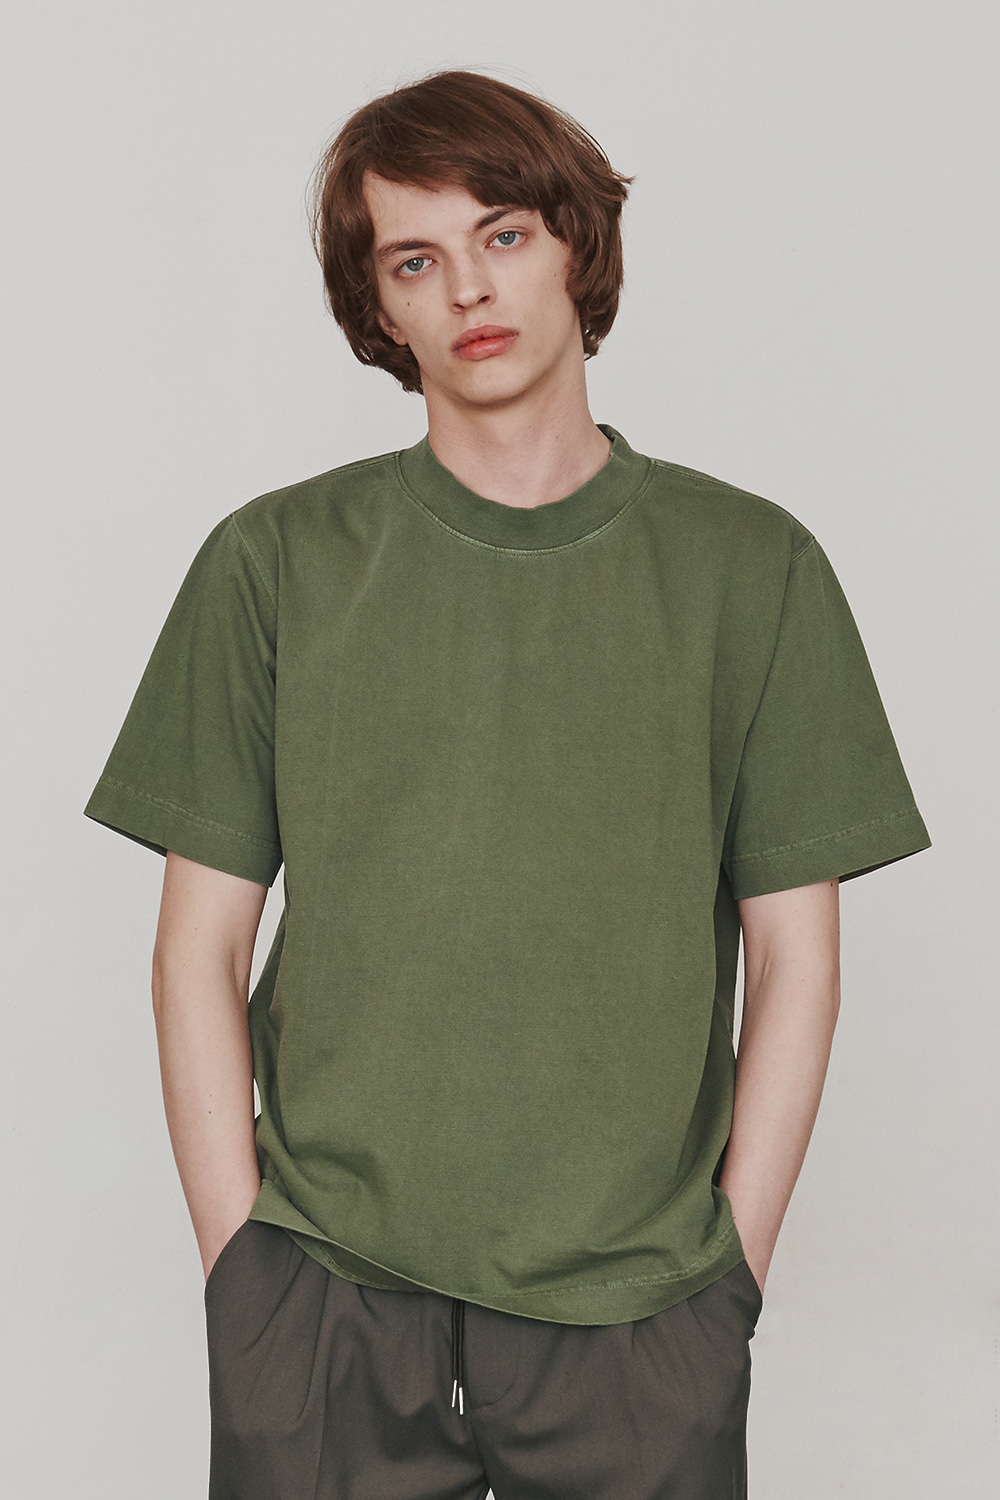 [ESFAI] 1,3/8 T Shirt (Green)